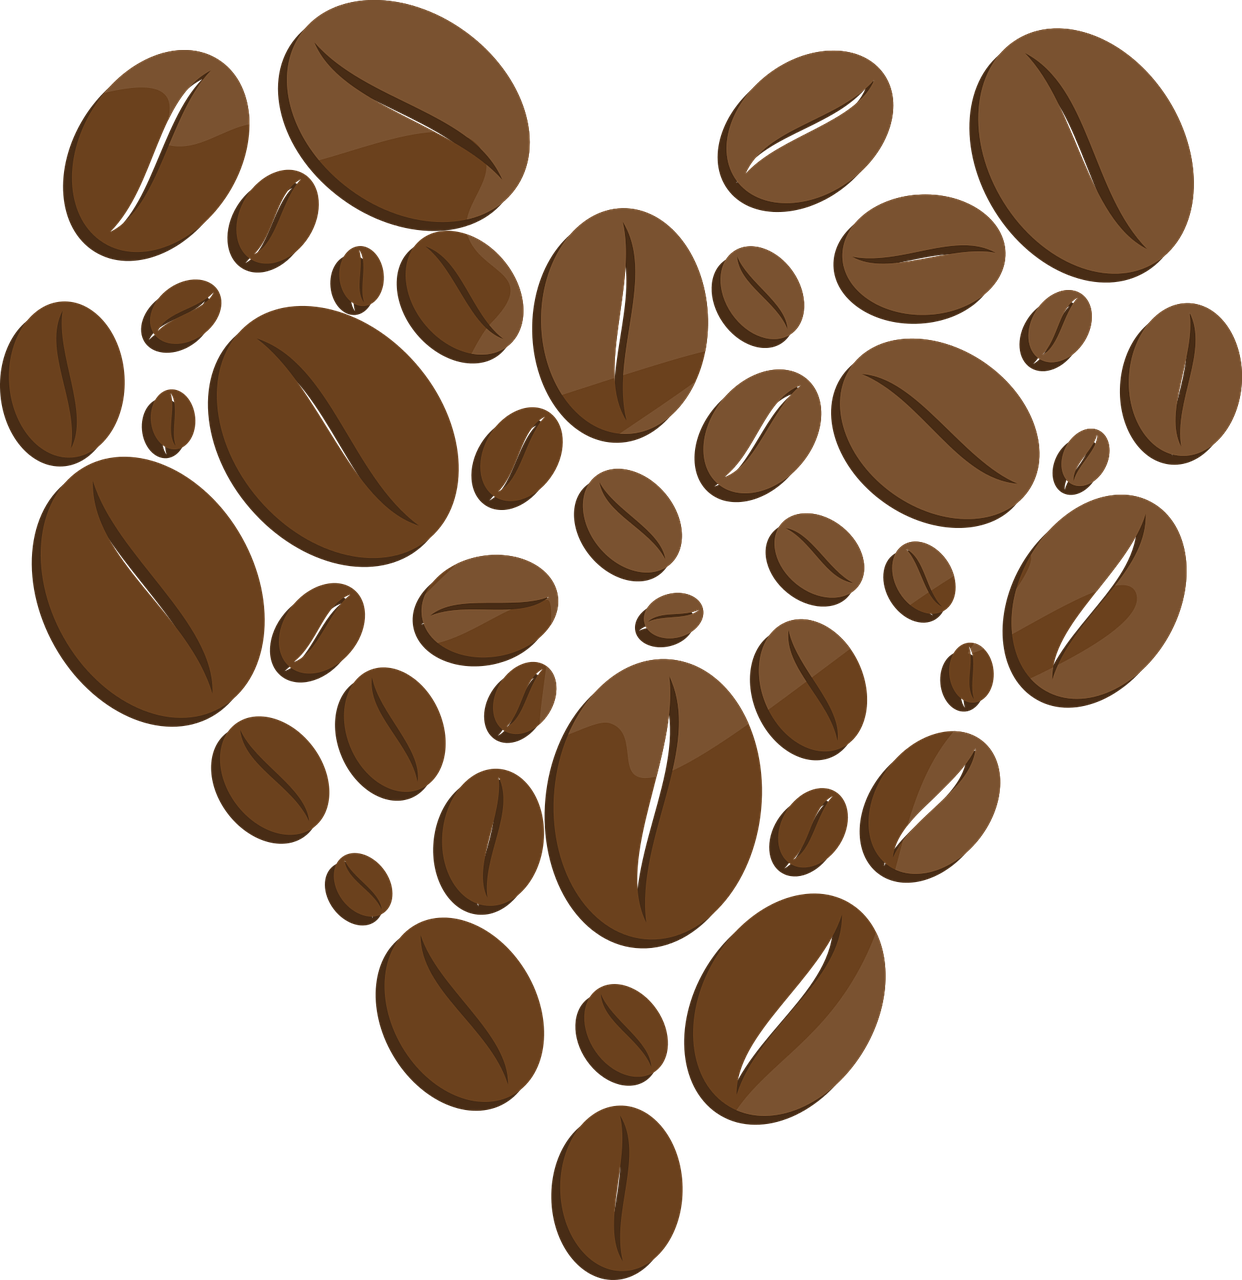 Coffe drawing coffee bean. Beans heart